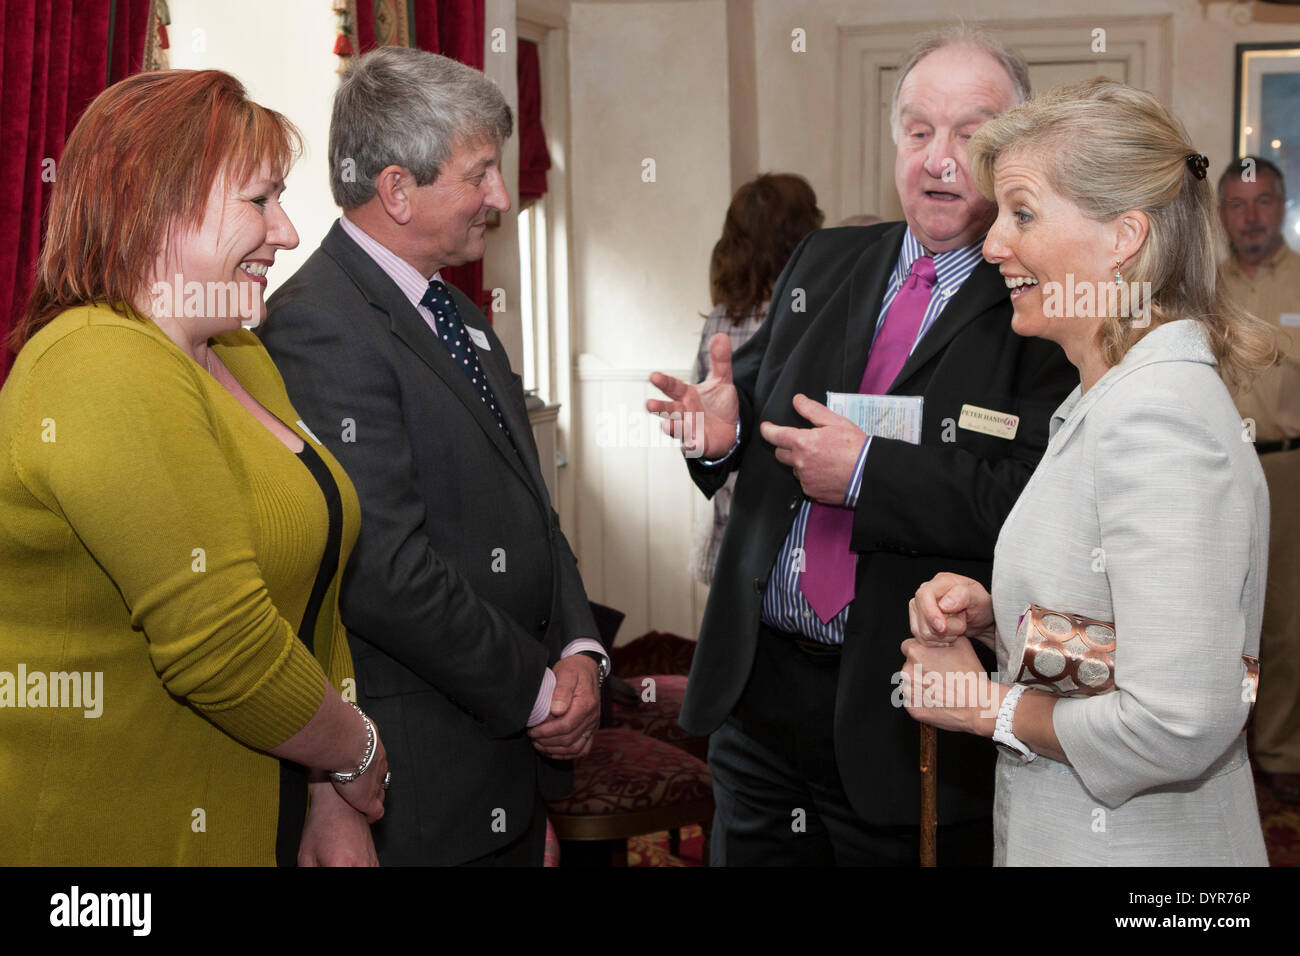 Coleford, Gloucestershire, UK. 24th Apr, 2014. Peter Hands of Speech House Hotel present Mr Nick Horton and Samm Jarman to HRH The Countess of Wessex. Mr Hortons company Royal Forest Pennant donated repairs to the scheduled monument which marks the center of the historic forest. Credit:  David Broadbent/Alamy Live News - Stock Image